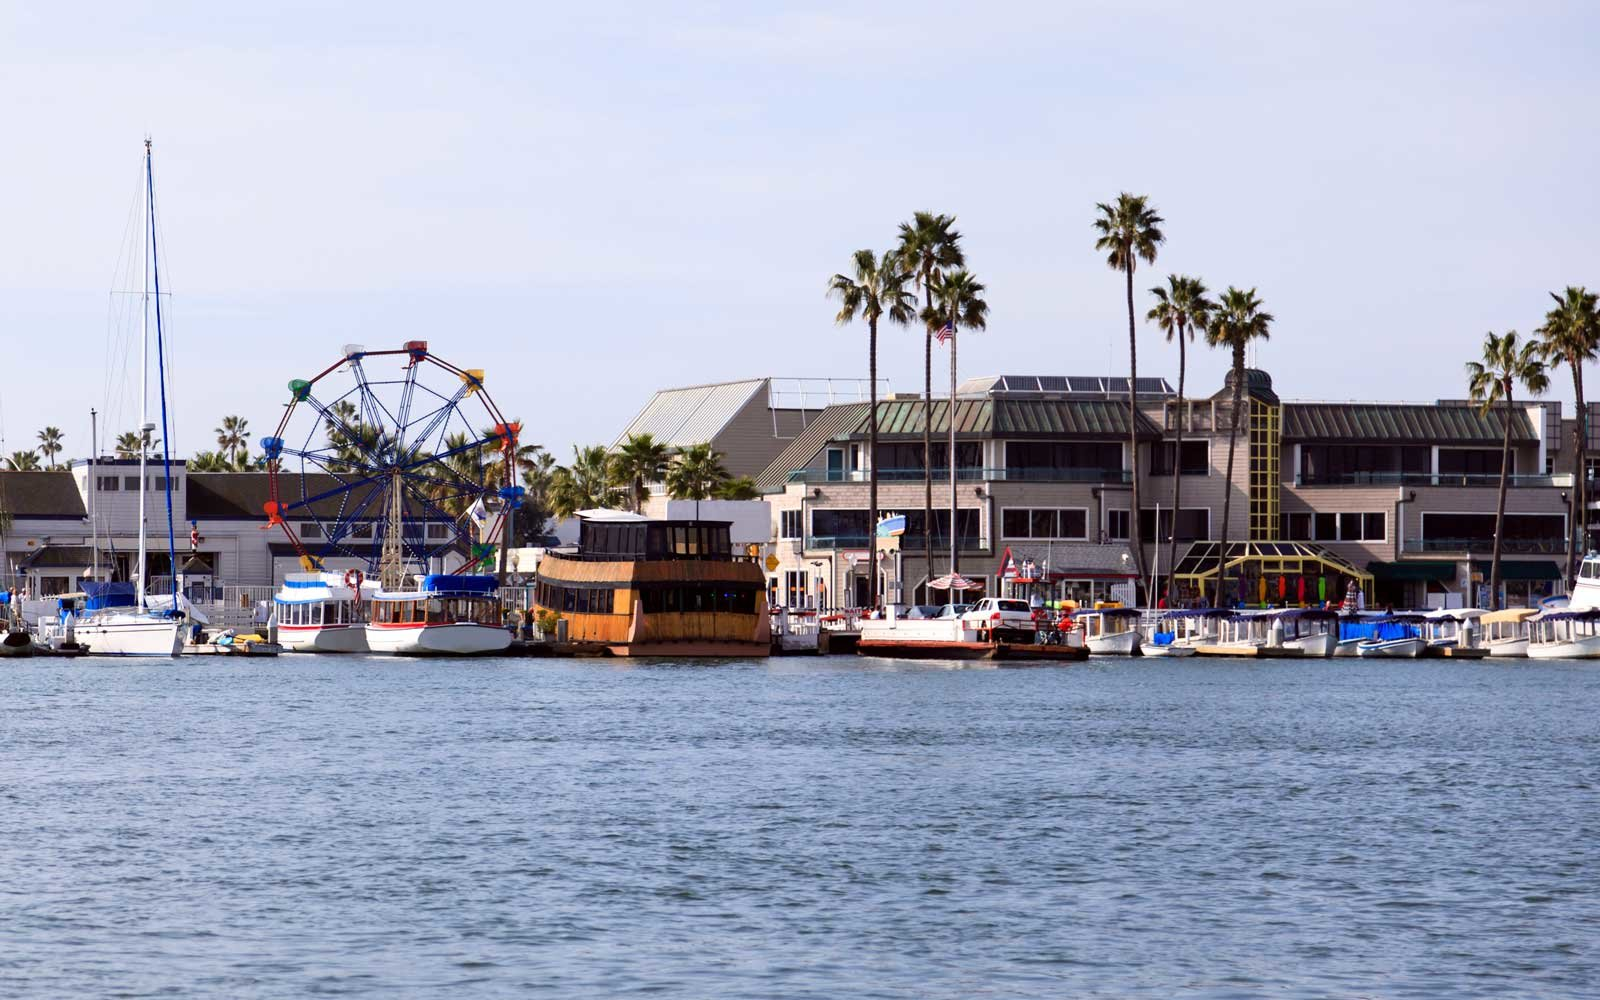 Newport Beach, Balboa Fun Zone